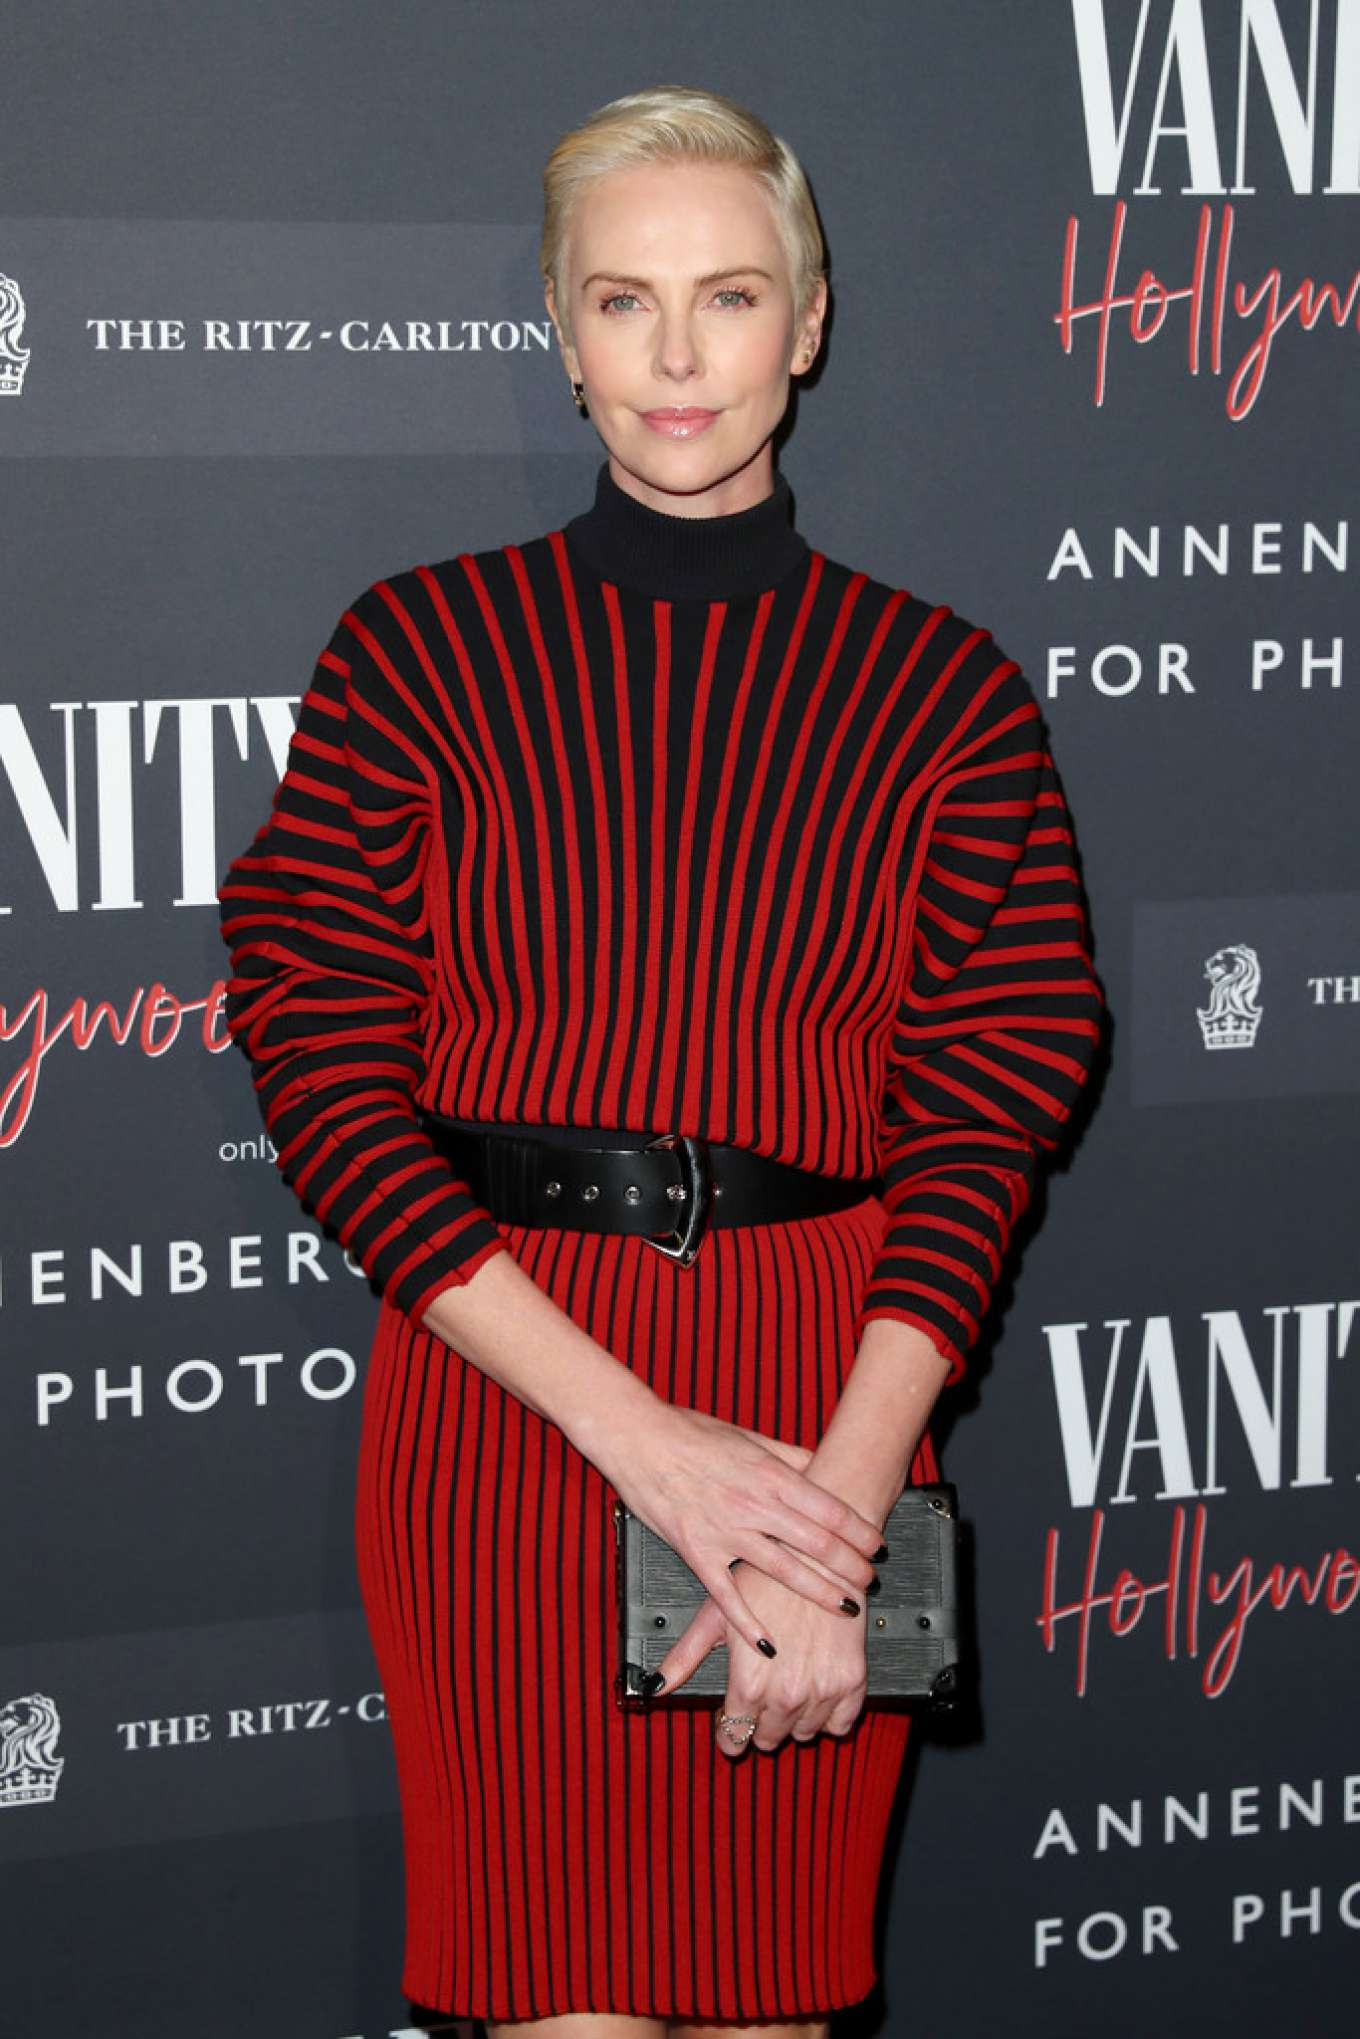 Charlize Theron - 'Vanity Fair: Hollywood Calling' Opening in Century City